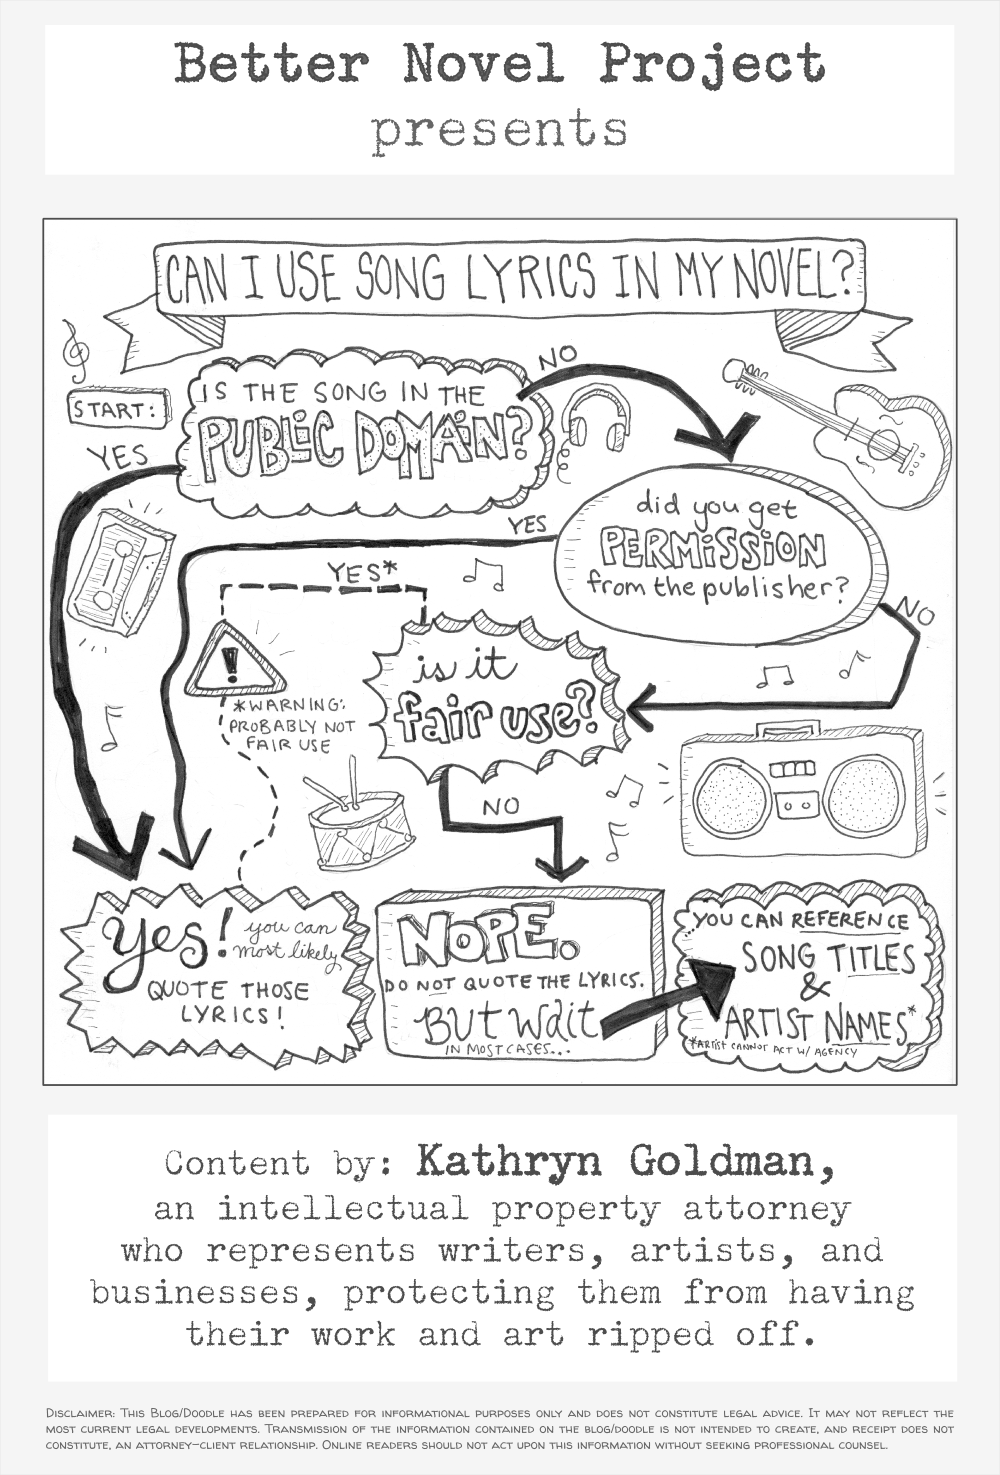 How To Compose A Song Lyrics - arxiusarquitectura